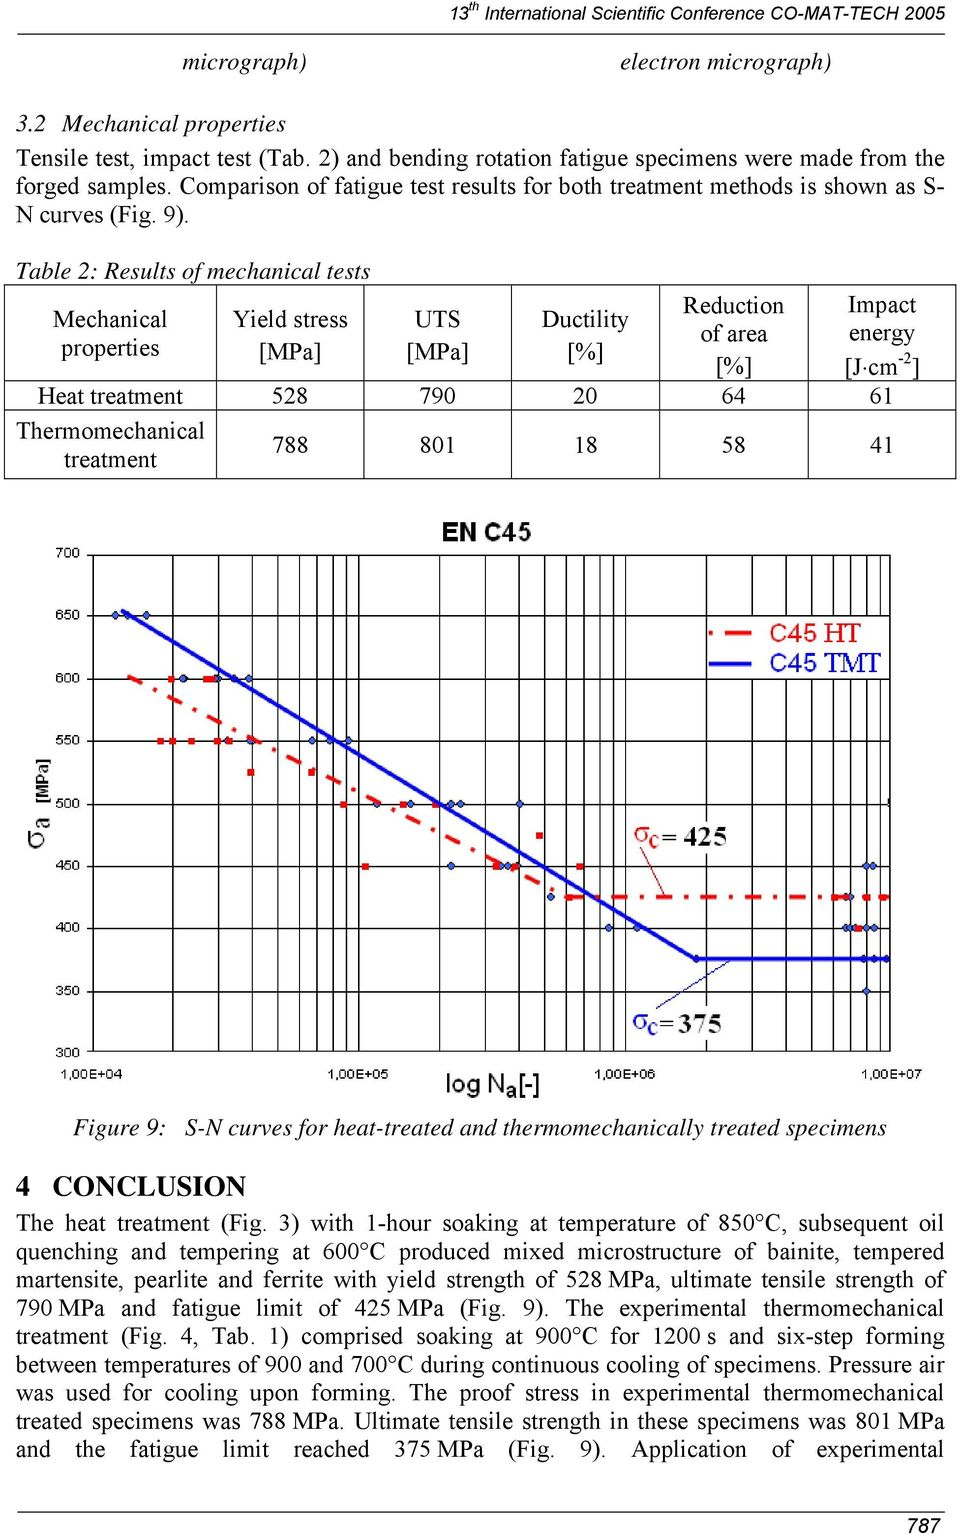 Table 2: Results of mechanical tests Mechanical properties Yield stress [MPa] UTS [MPa] Ductility [%] Reduction of area [%] Impact energy [J cm -2 ] Heat treatment 528 790 20 64 61 Thermomechanical